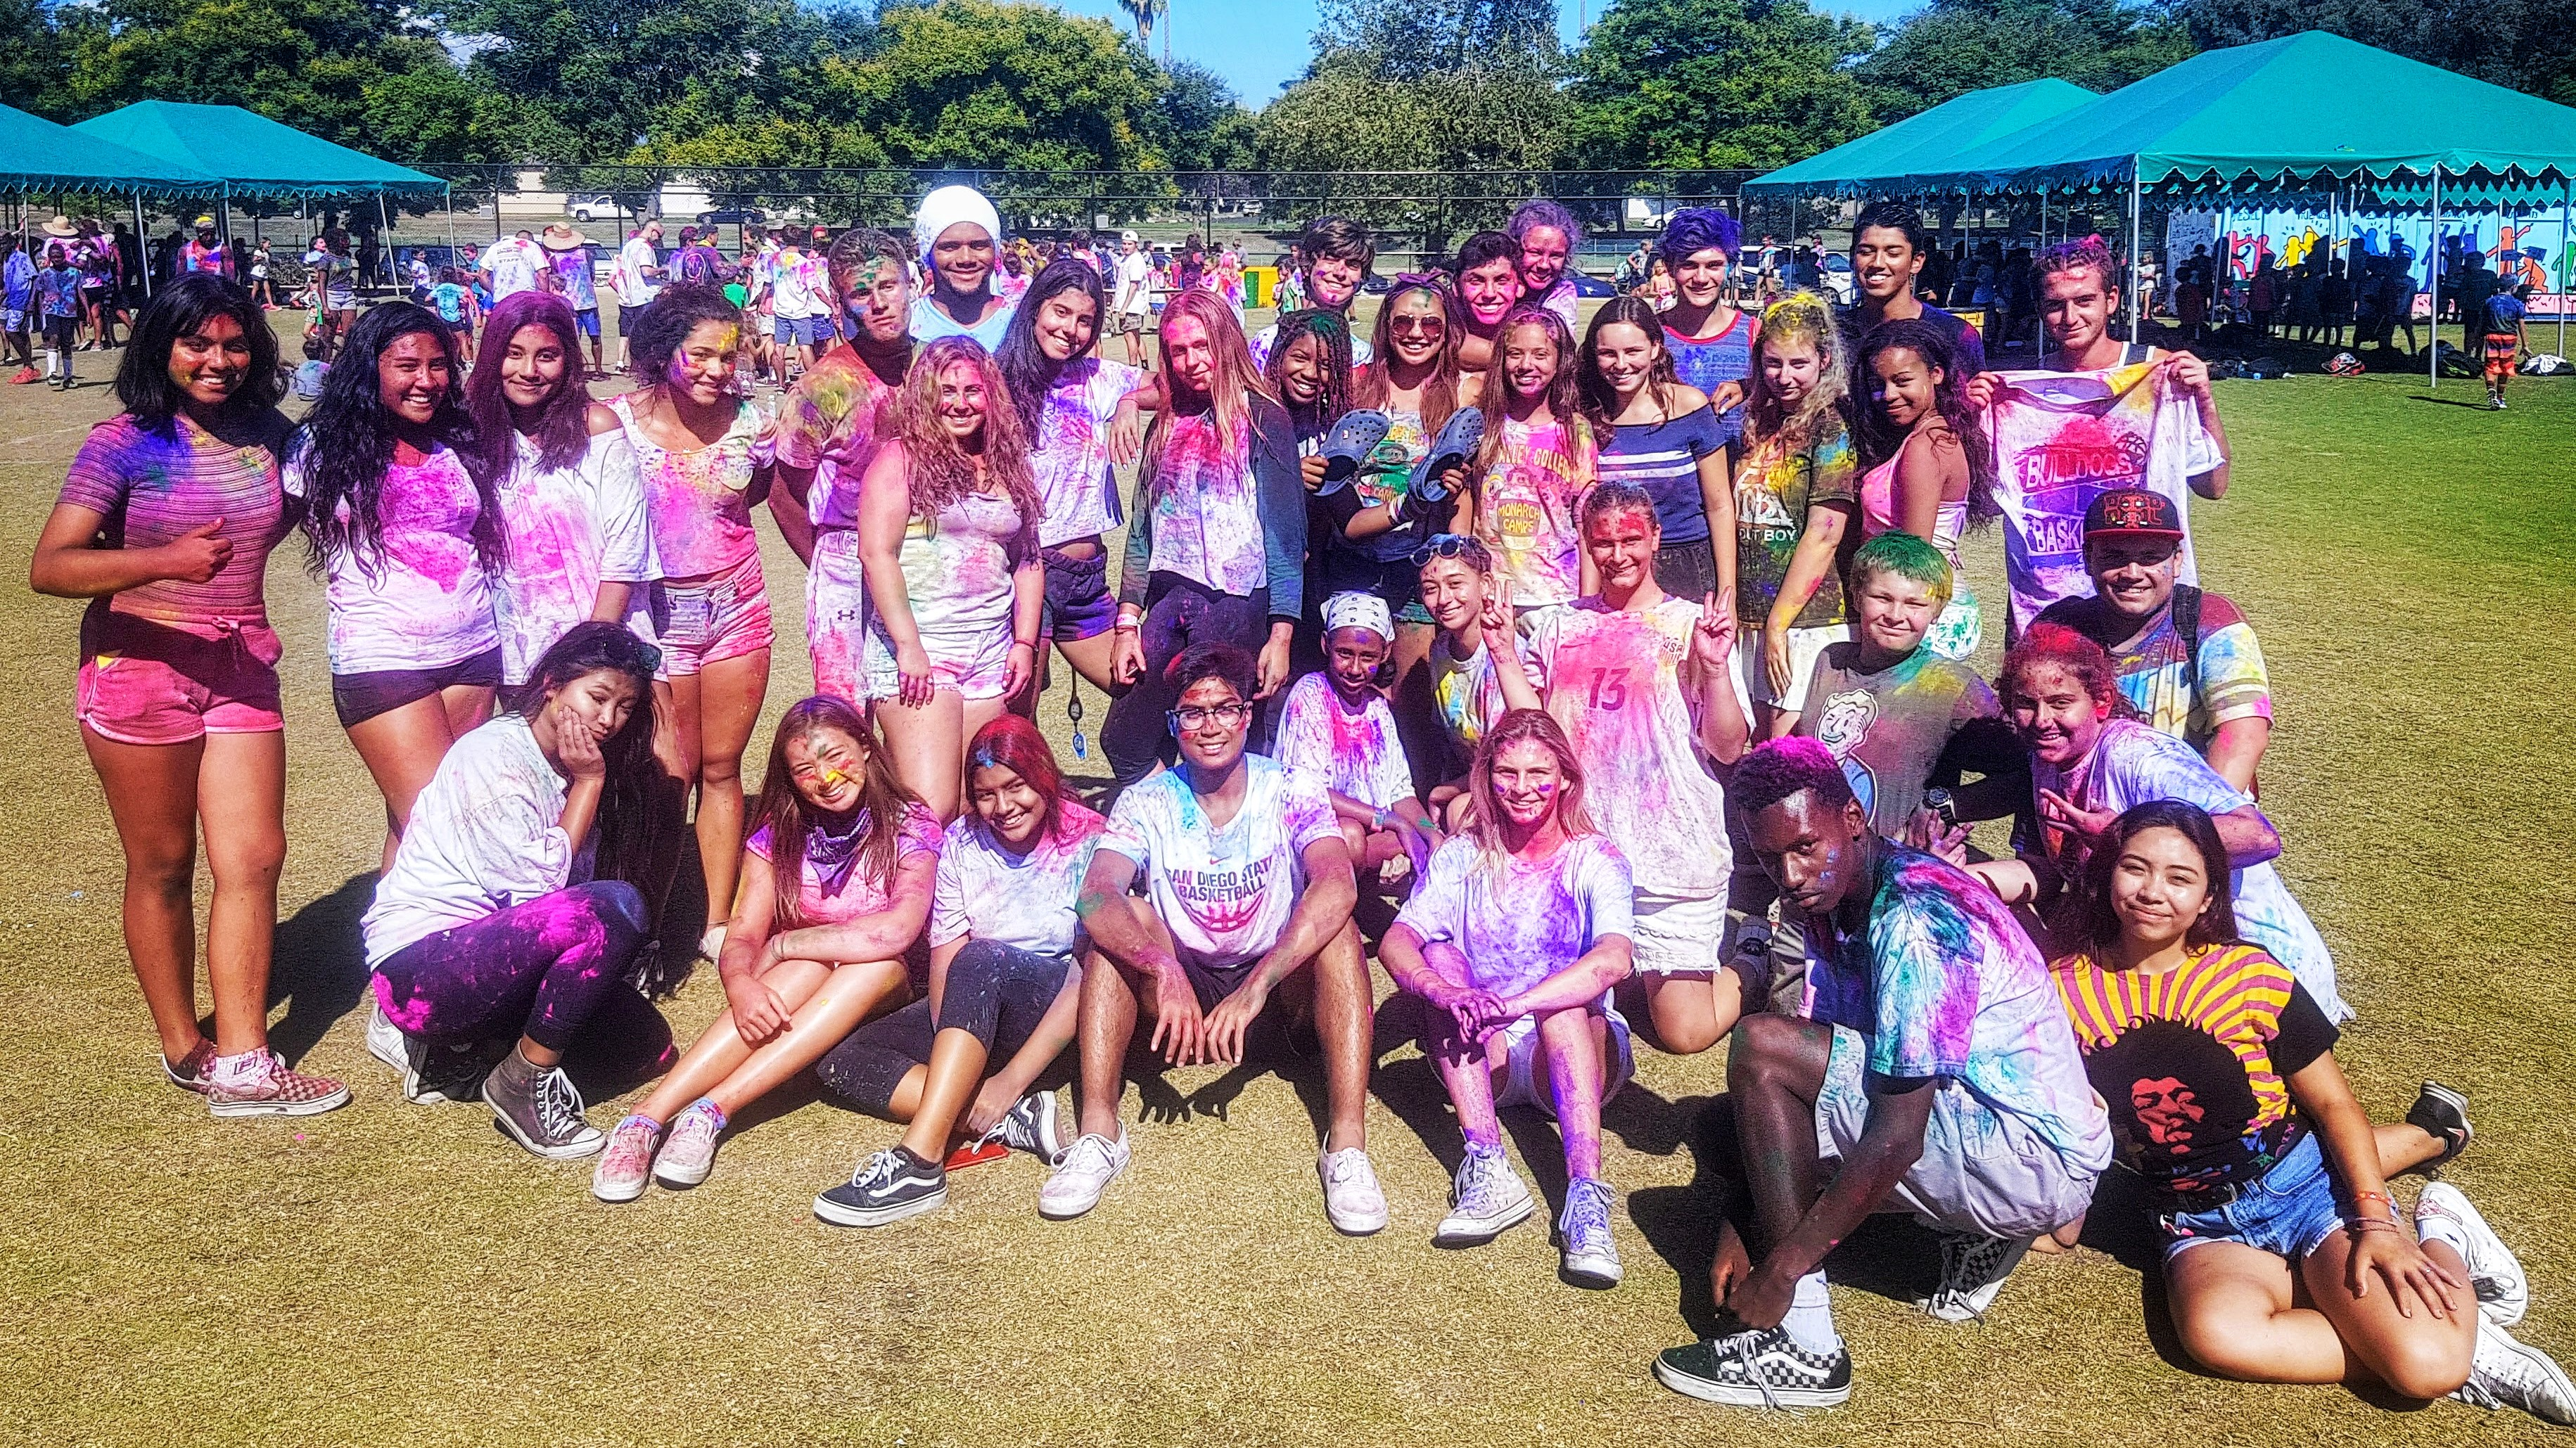 https://monarchcamps.com/wp-content/uploads/2018/01/monarch-camps-summer-camp-los-angeles-teenagers-smiling-after-color-paint-party.jpg